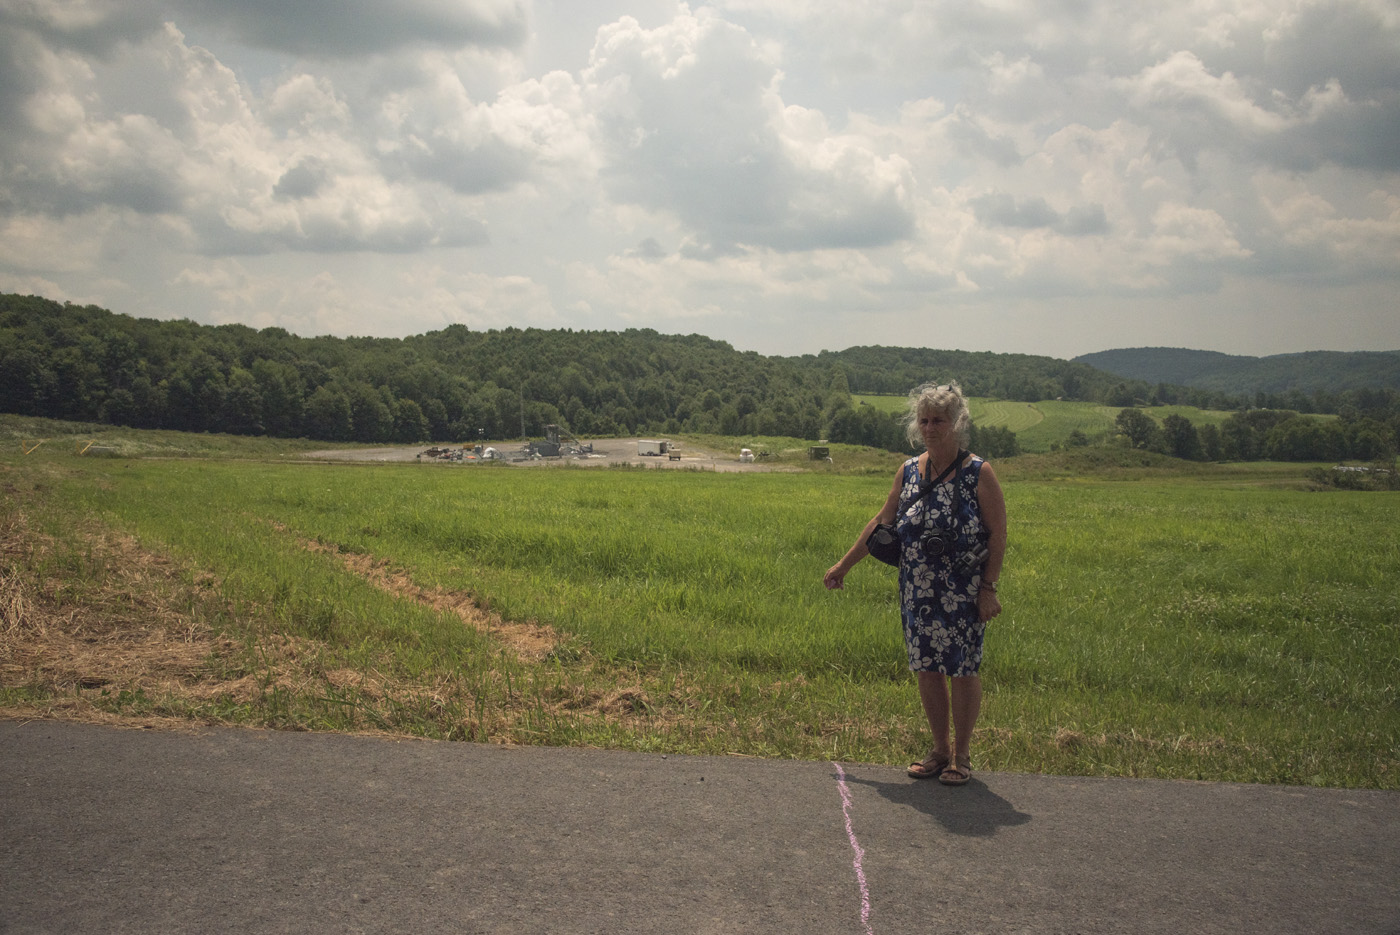 """Vera Scroggins stands by a line on the road in Susquehanna County where an injunction by Cabot Oil and Gas restricts her physical movement, 2015.                                                                                                                                                                                                                                                                                                    /* Style Definitions */  table.MsoNormalTable {mso-style-name:""""Table Normal""""; mso-tstyle-rowband-size:0; mso-tstyle-colband-size:0; mso-style-noshow:yes; mso-style-priority:99; mso-style-parent:""""""""; mso-padding-alt:0in 5.4pt 0in 5.4pt; mso-para-margin-top:0in; mso-para-margin-right:0in; mso-para-margin-bottom:10.0pt; mso-para-margin-left:0in; line-height:115%; mso-pagination:widow-orphan; font-size:11.0pt; font-family:""""Times New Roman"""",""""serif""""; mso-ascii-font-family:""""Times New Roman""""; mso-ascii-theme-font:minor-latin; mso-hansi-font-family:""""Times New Roman""""; mso-hansi-theme-font:minor-latin; mso-bidi-font-family:""""Times New Roman""""; mso-bidi-theme-font:minor-bidi;}    © Nina Berman/MSDP 2015"""